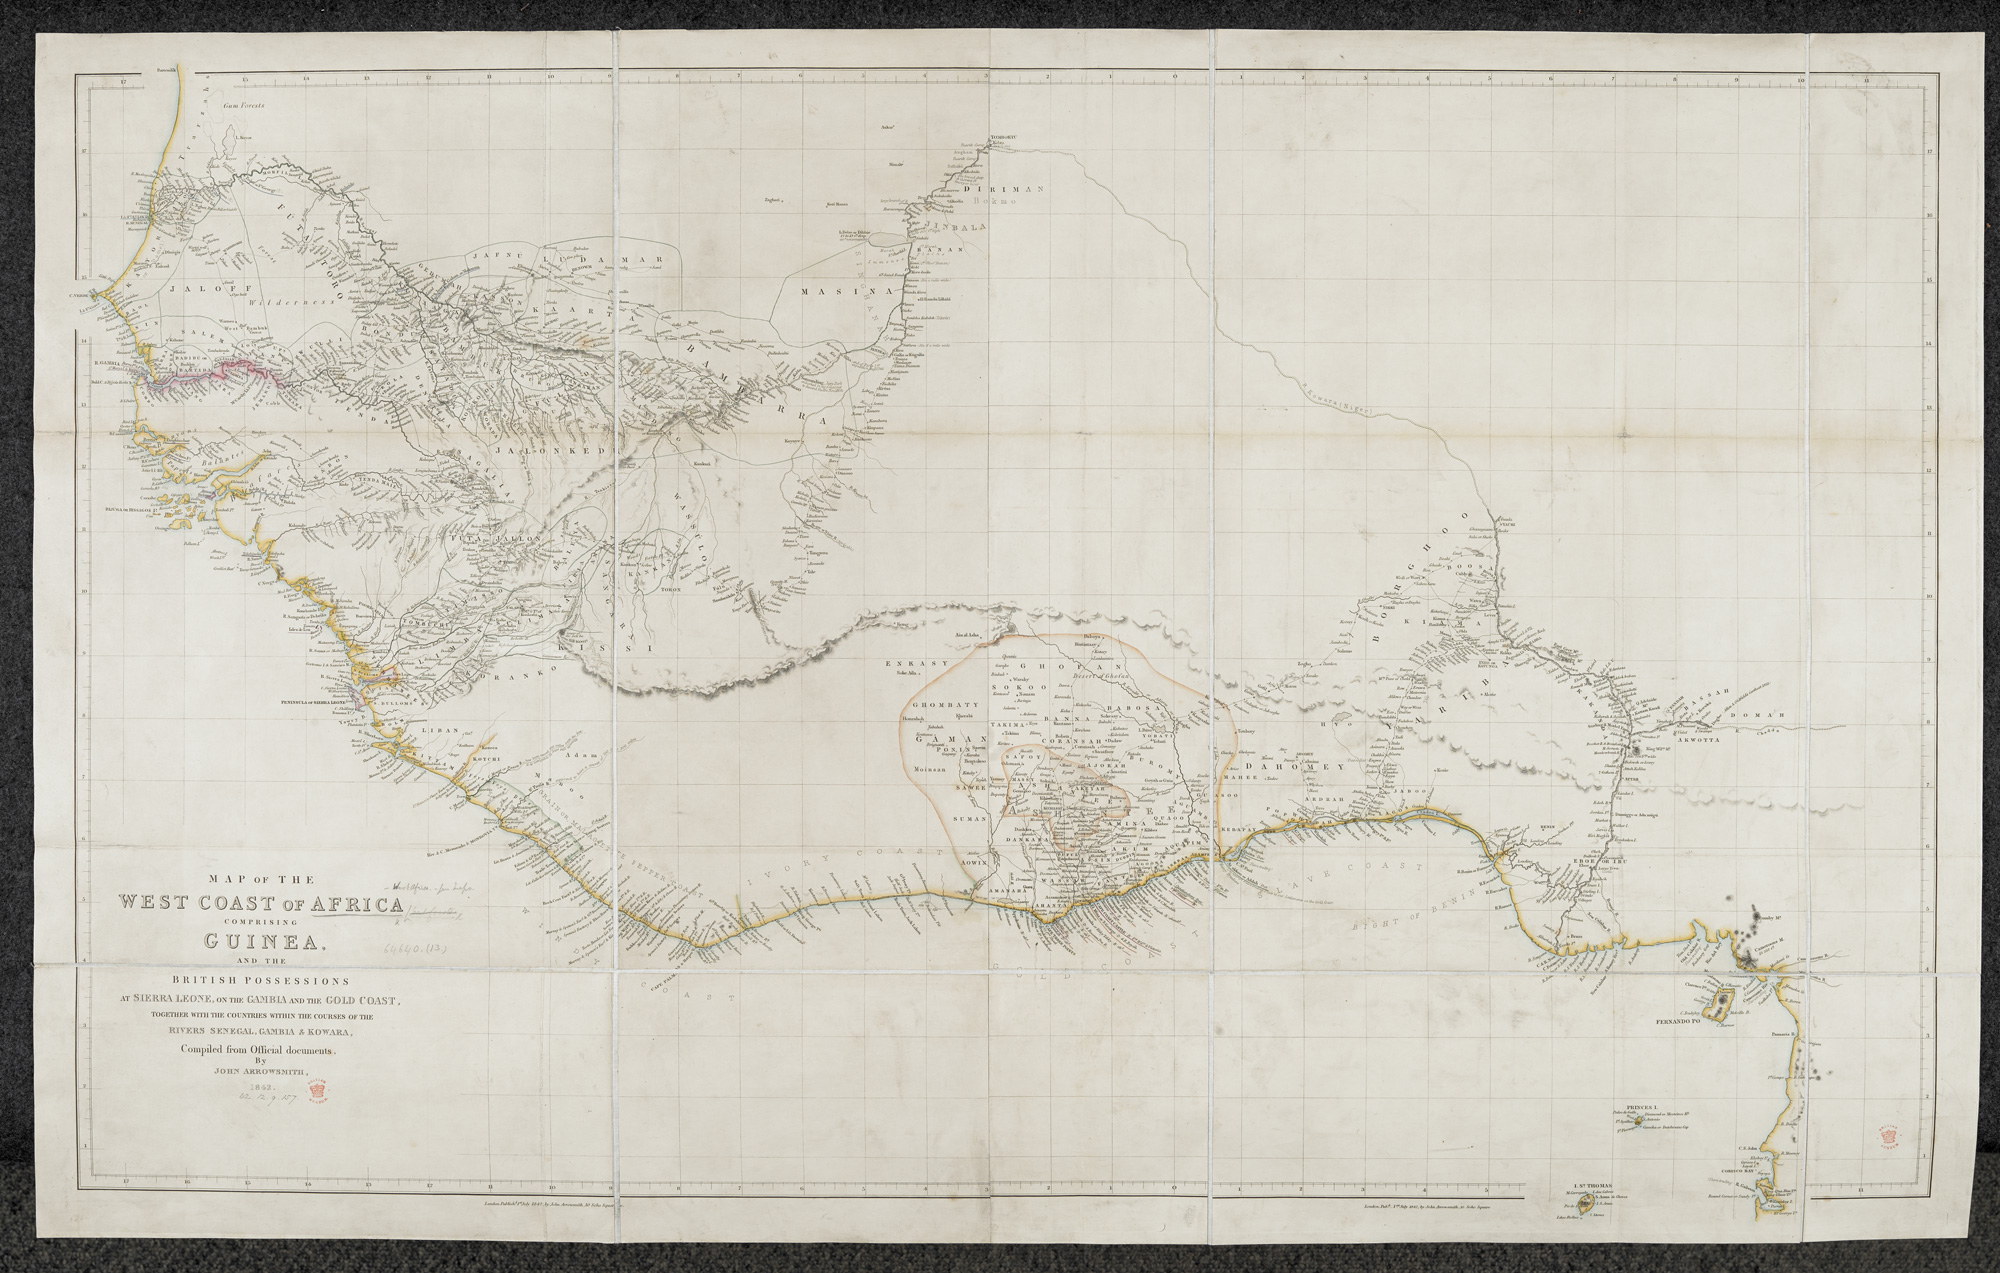 Map of the west coast of Africa, 1842 - The British Library